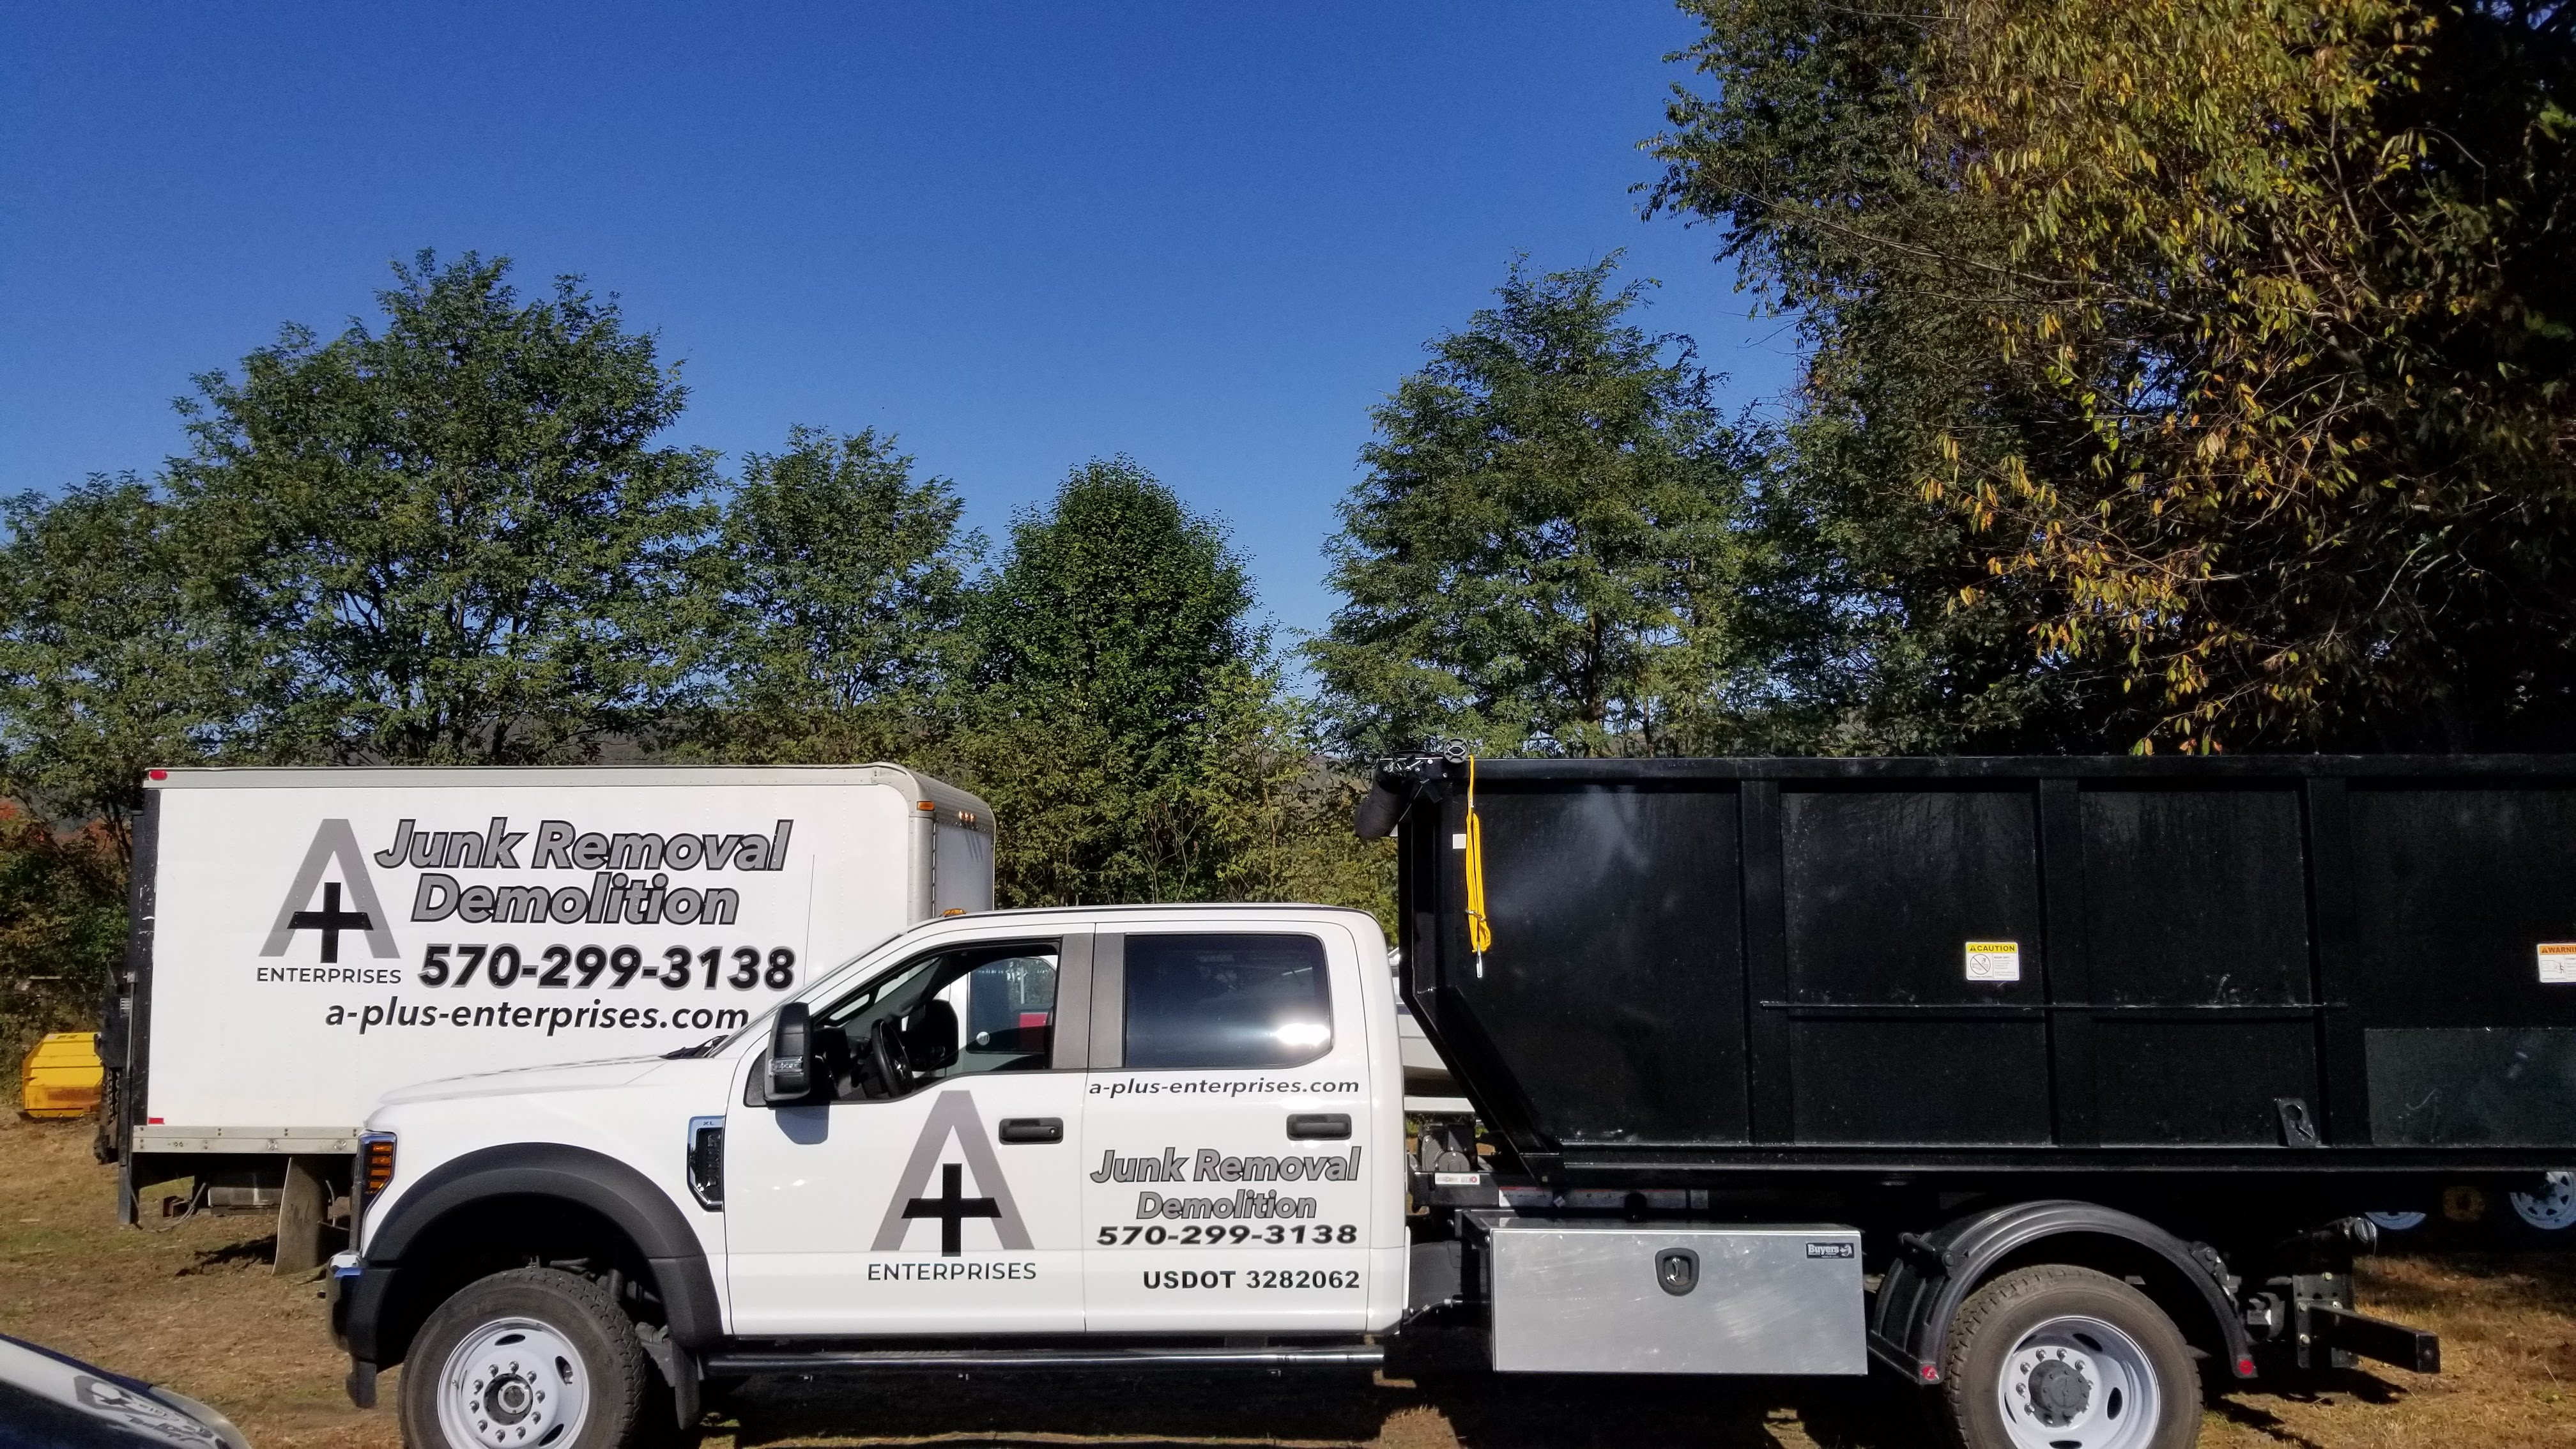 Junk Removal & Demolition Services NEPA